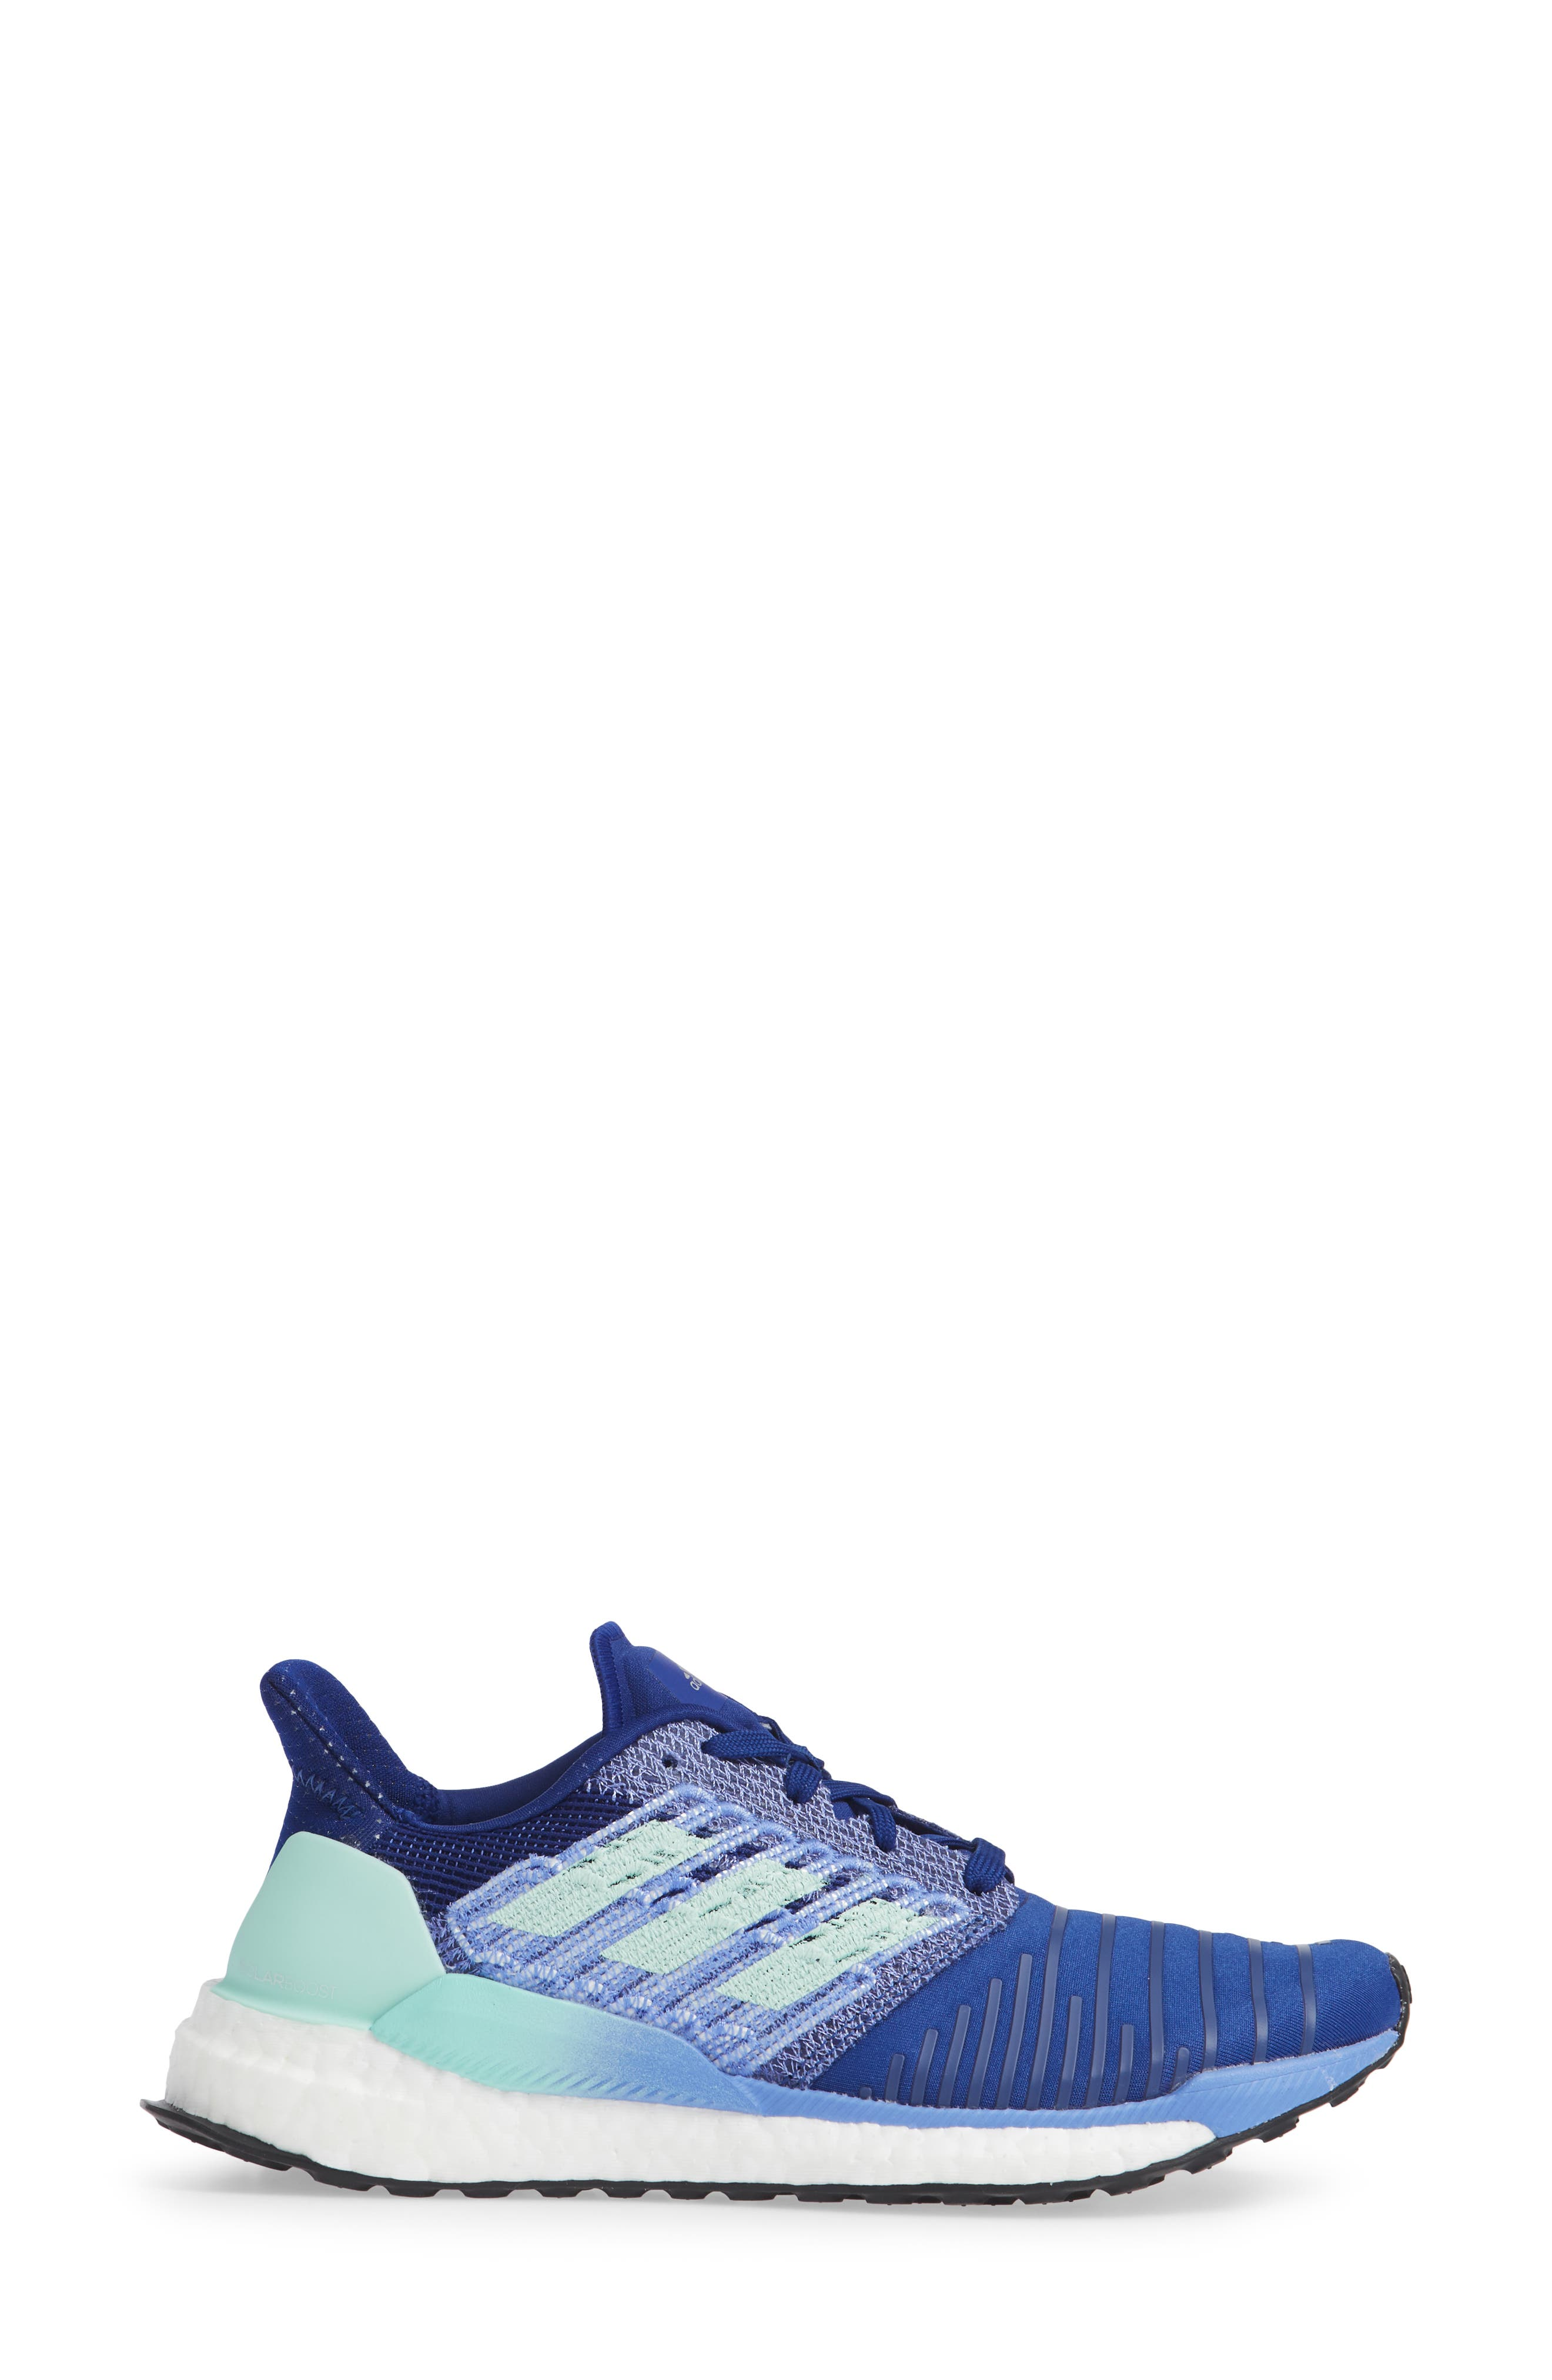 Solarboost Running Shoe,                             Alternate thumbnail 3, color,                             MYSTERY INK/ CLEAR MINT/ LILAC